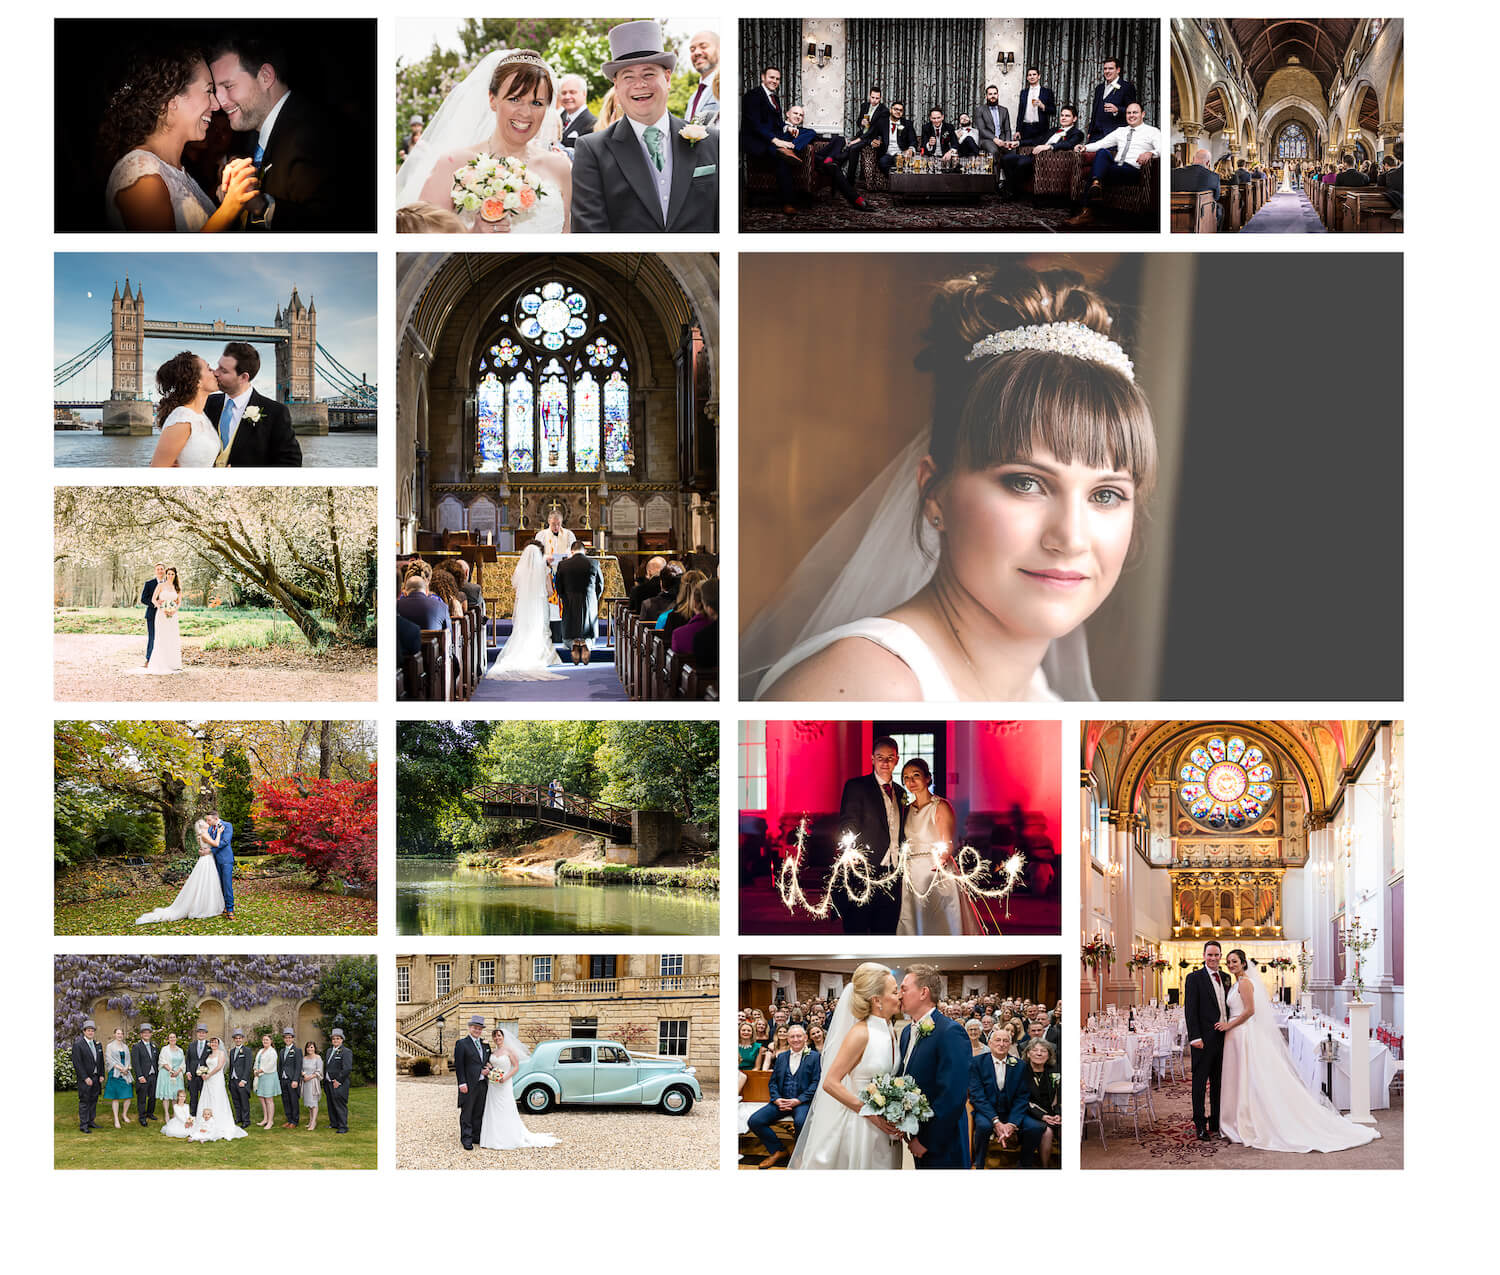 wedding photographers in Fleet, Hampshire for counties of Hampshire, Berkshire, Surrey and London